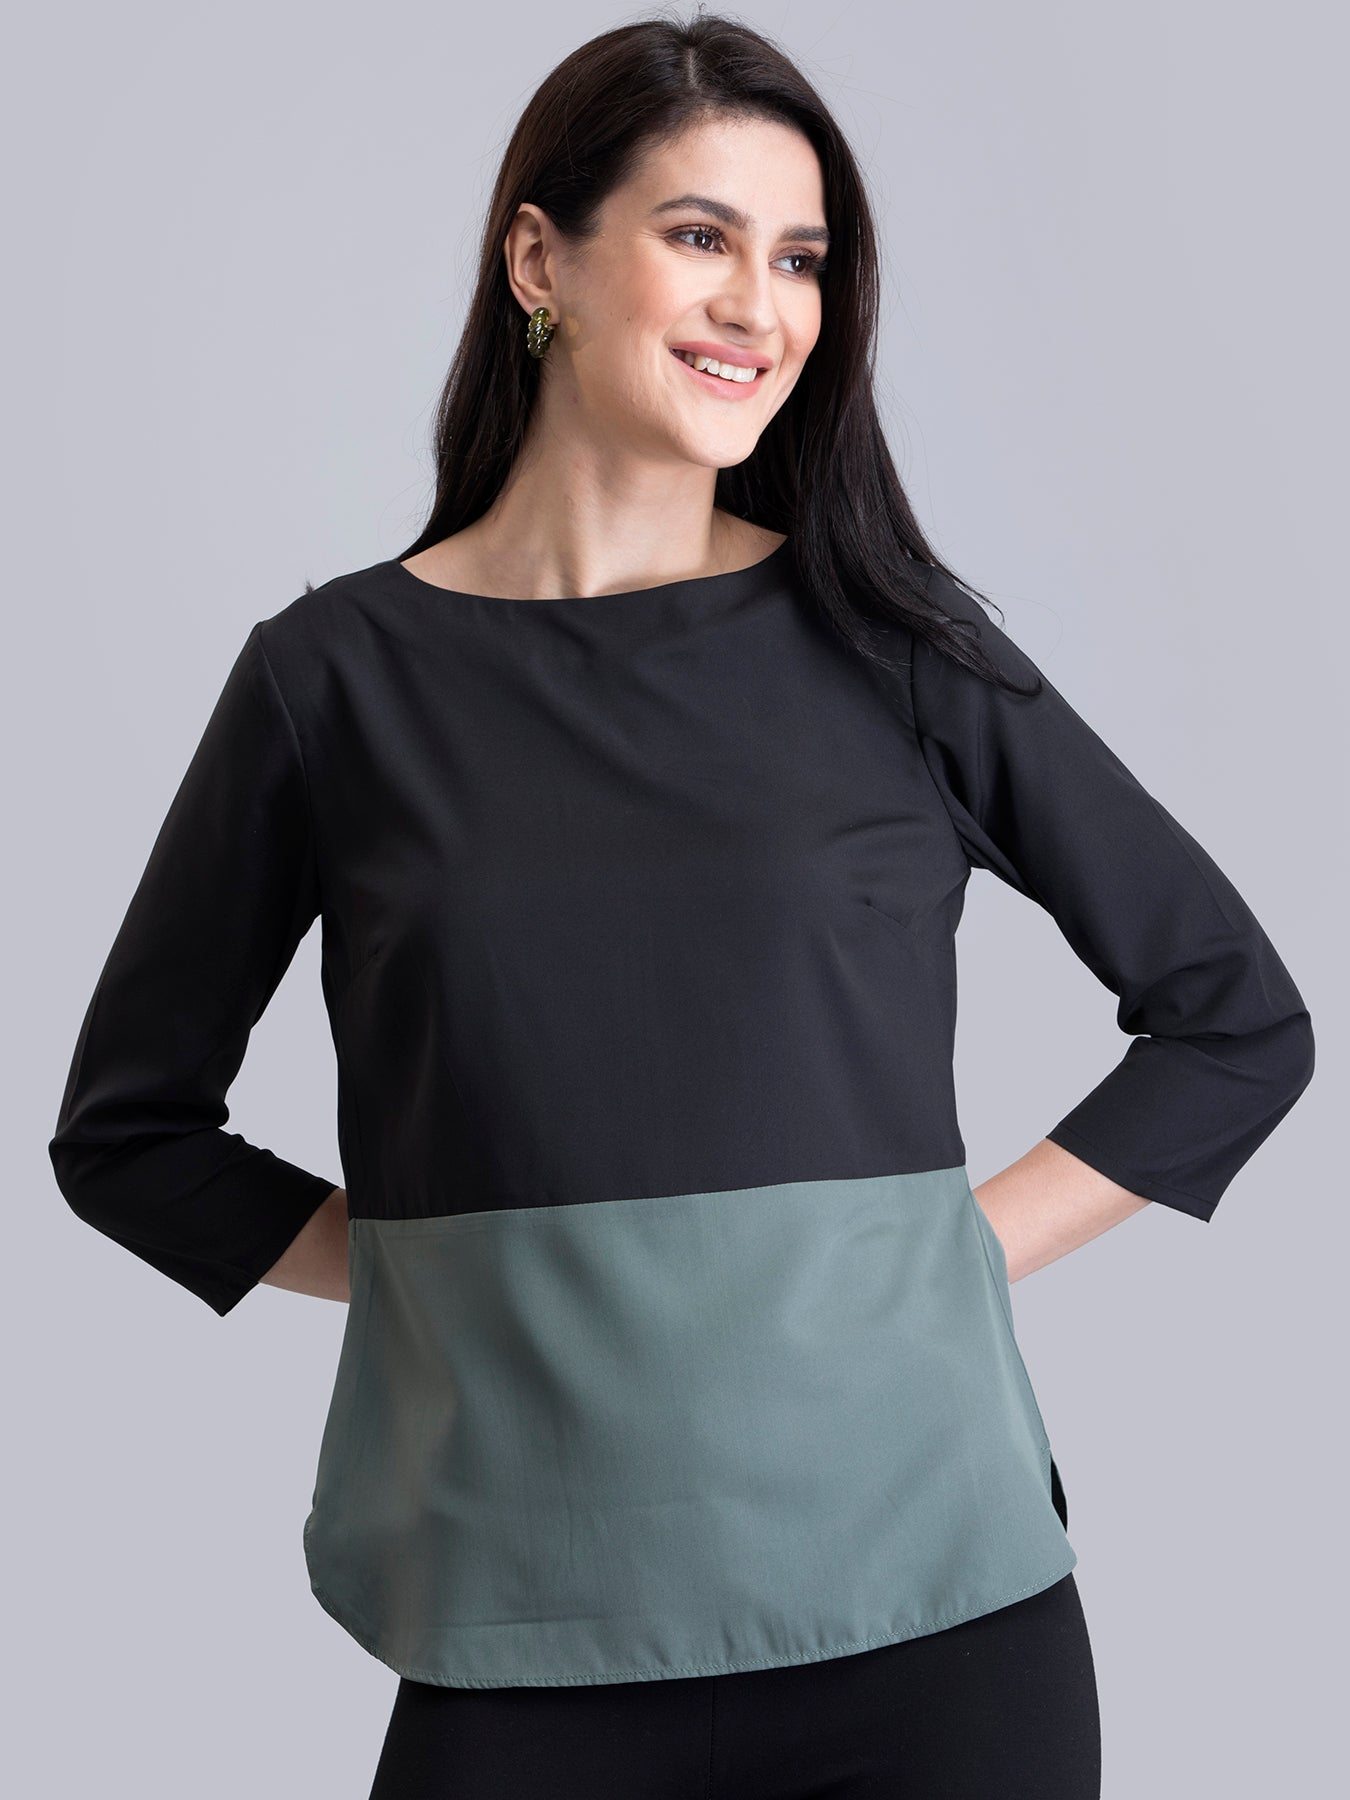 Boat Neck Colour Block Top - Black and Green